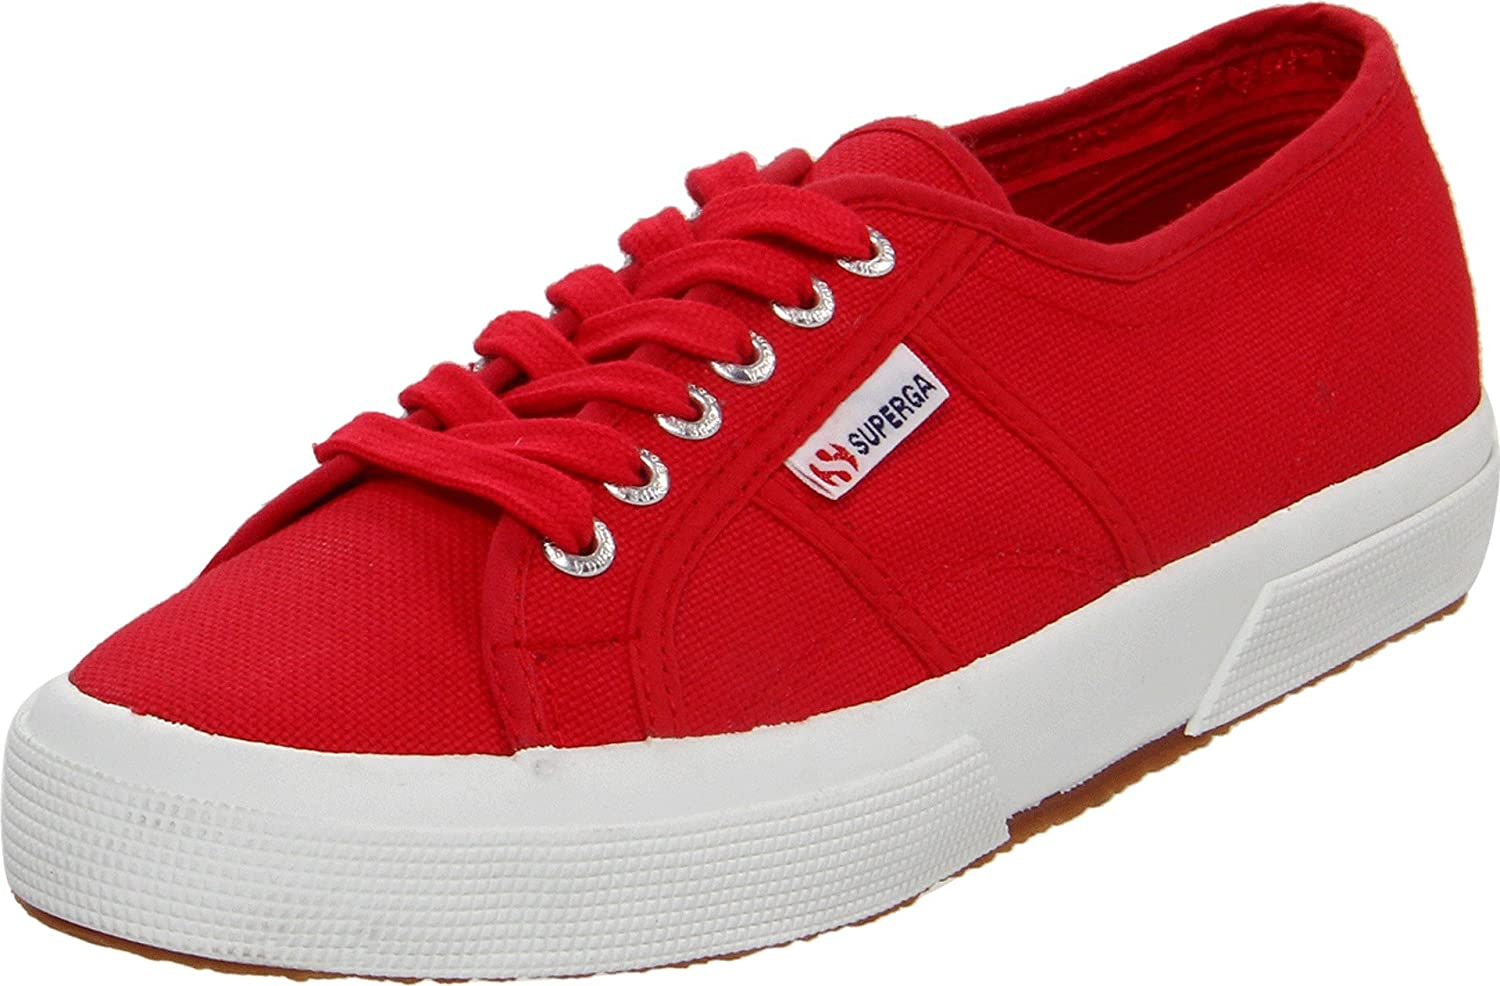 Superga 2750 Cotu Classic 2 B007PTEON8 35 EU/5 M Women's US/3.5 M US Men's|Maroon Red